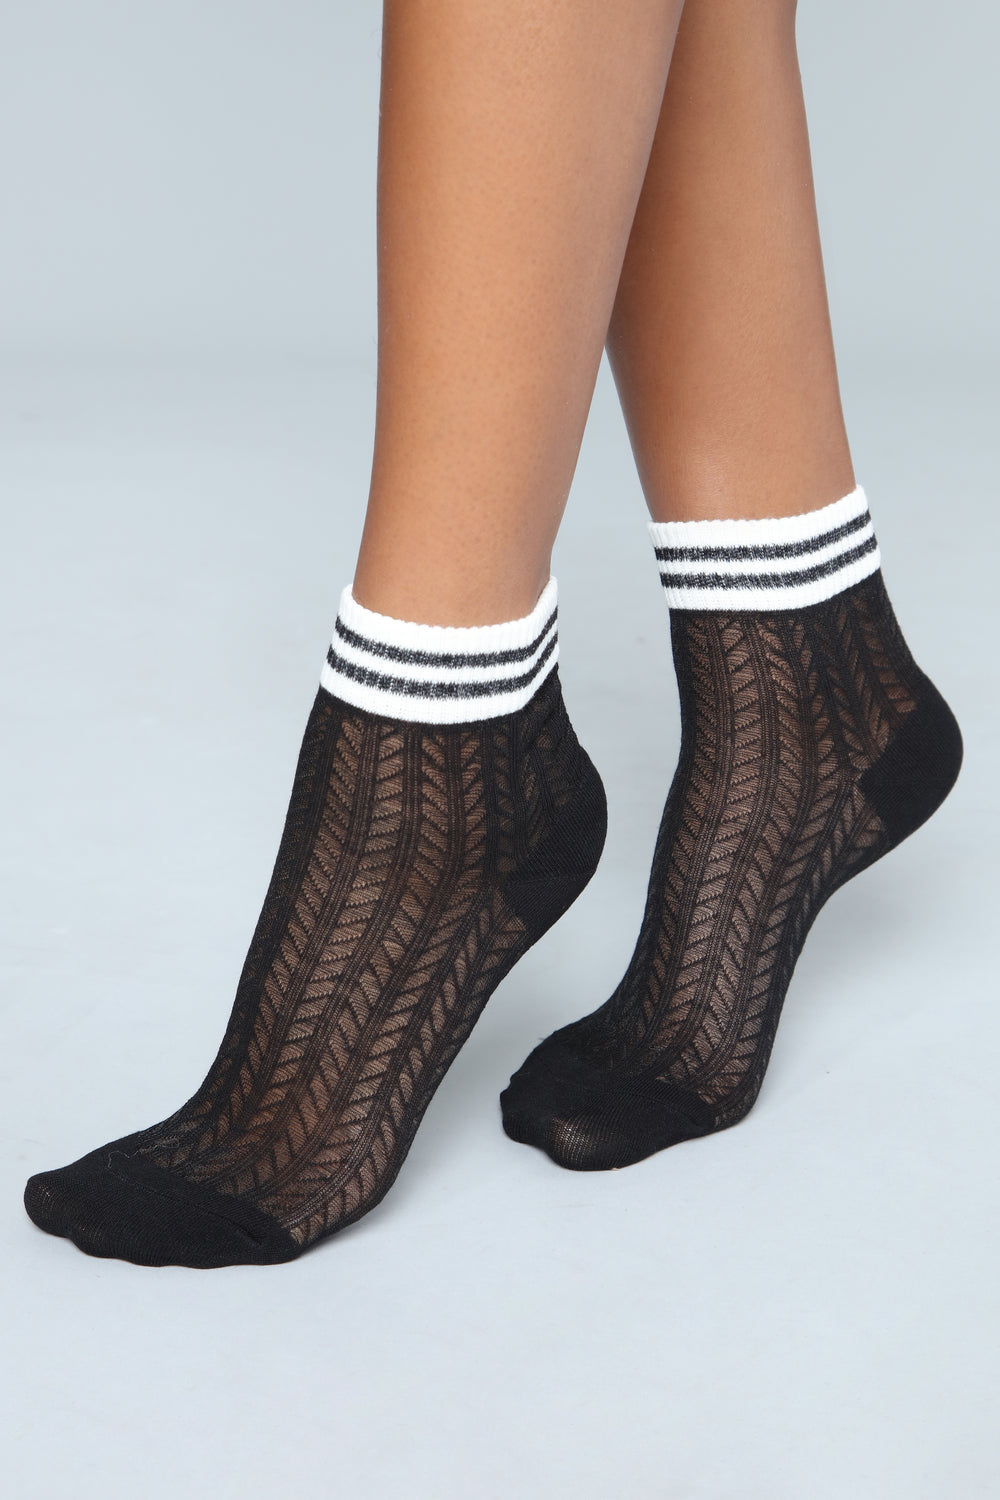 Only With My Crew Socks - Black